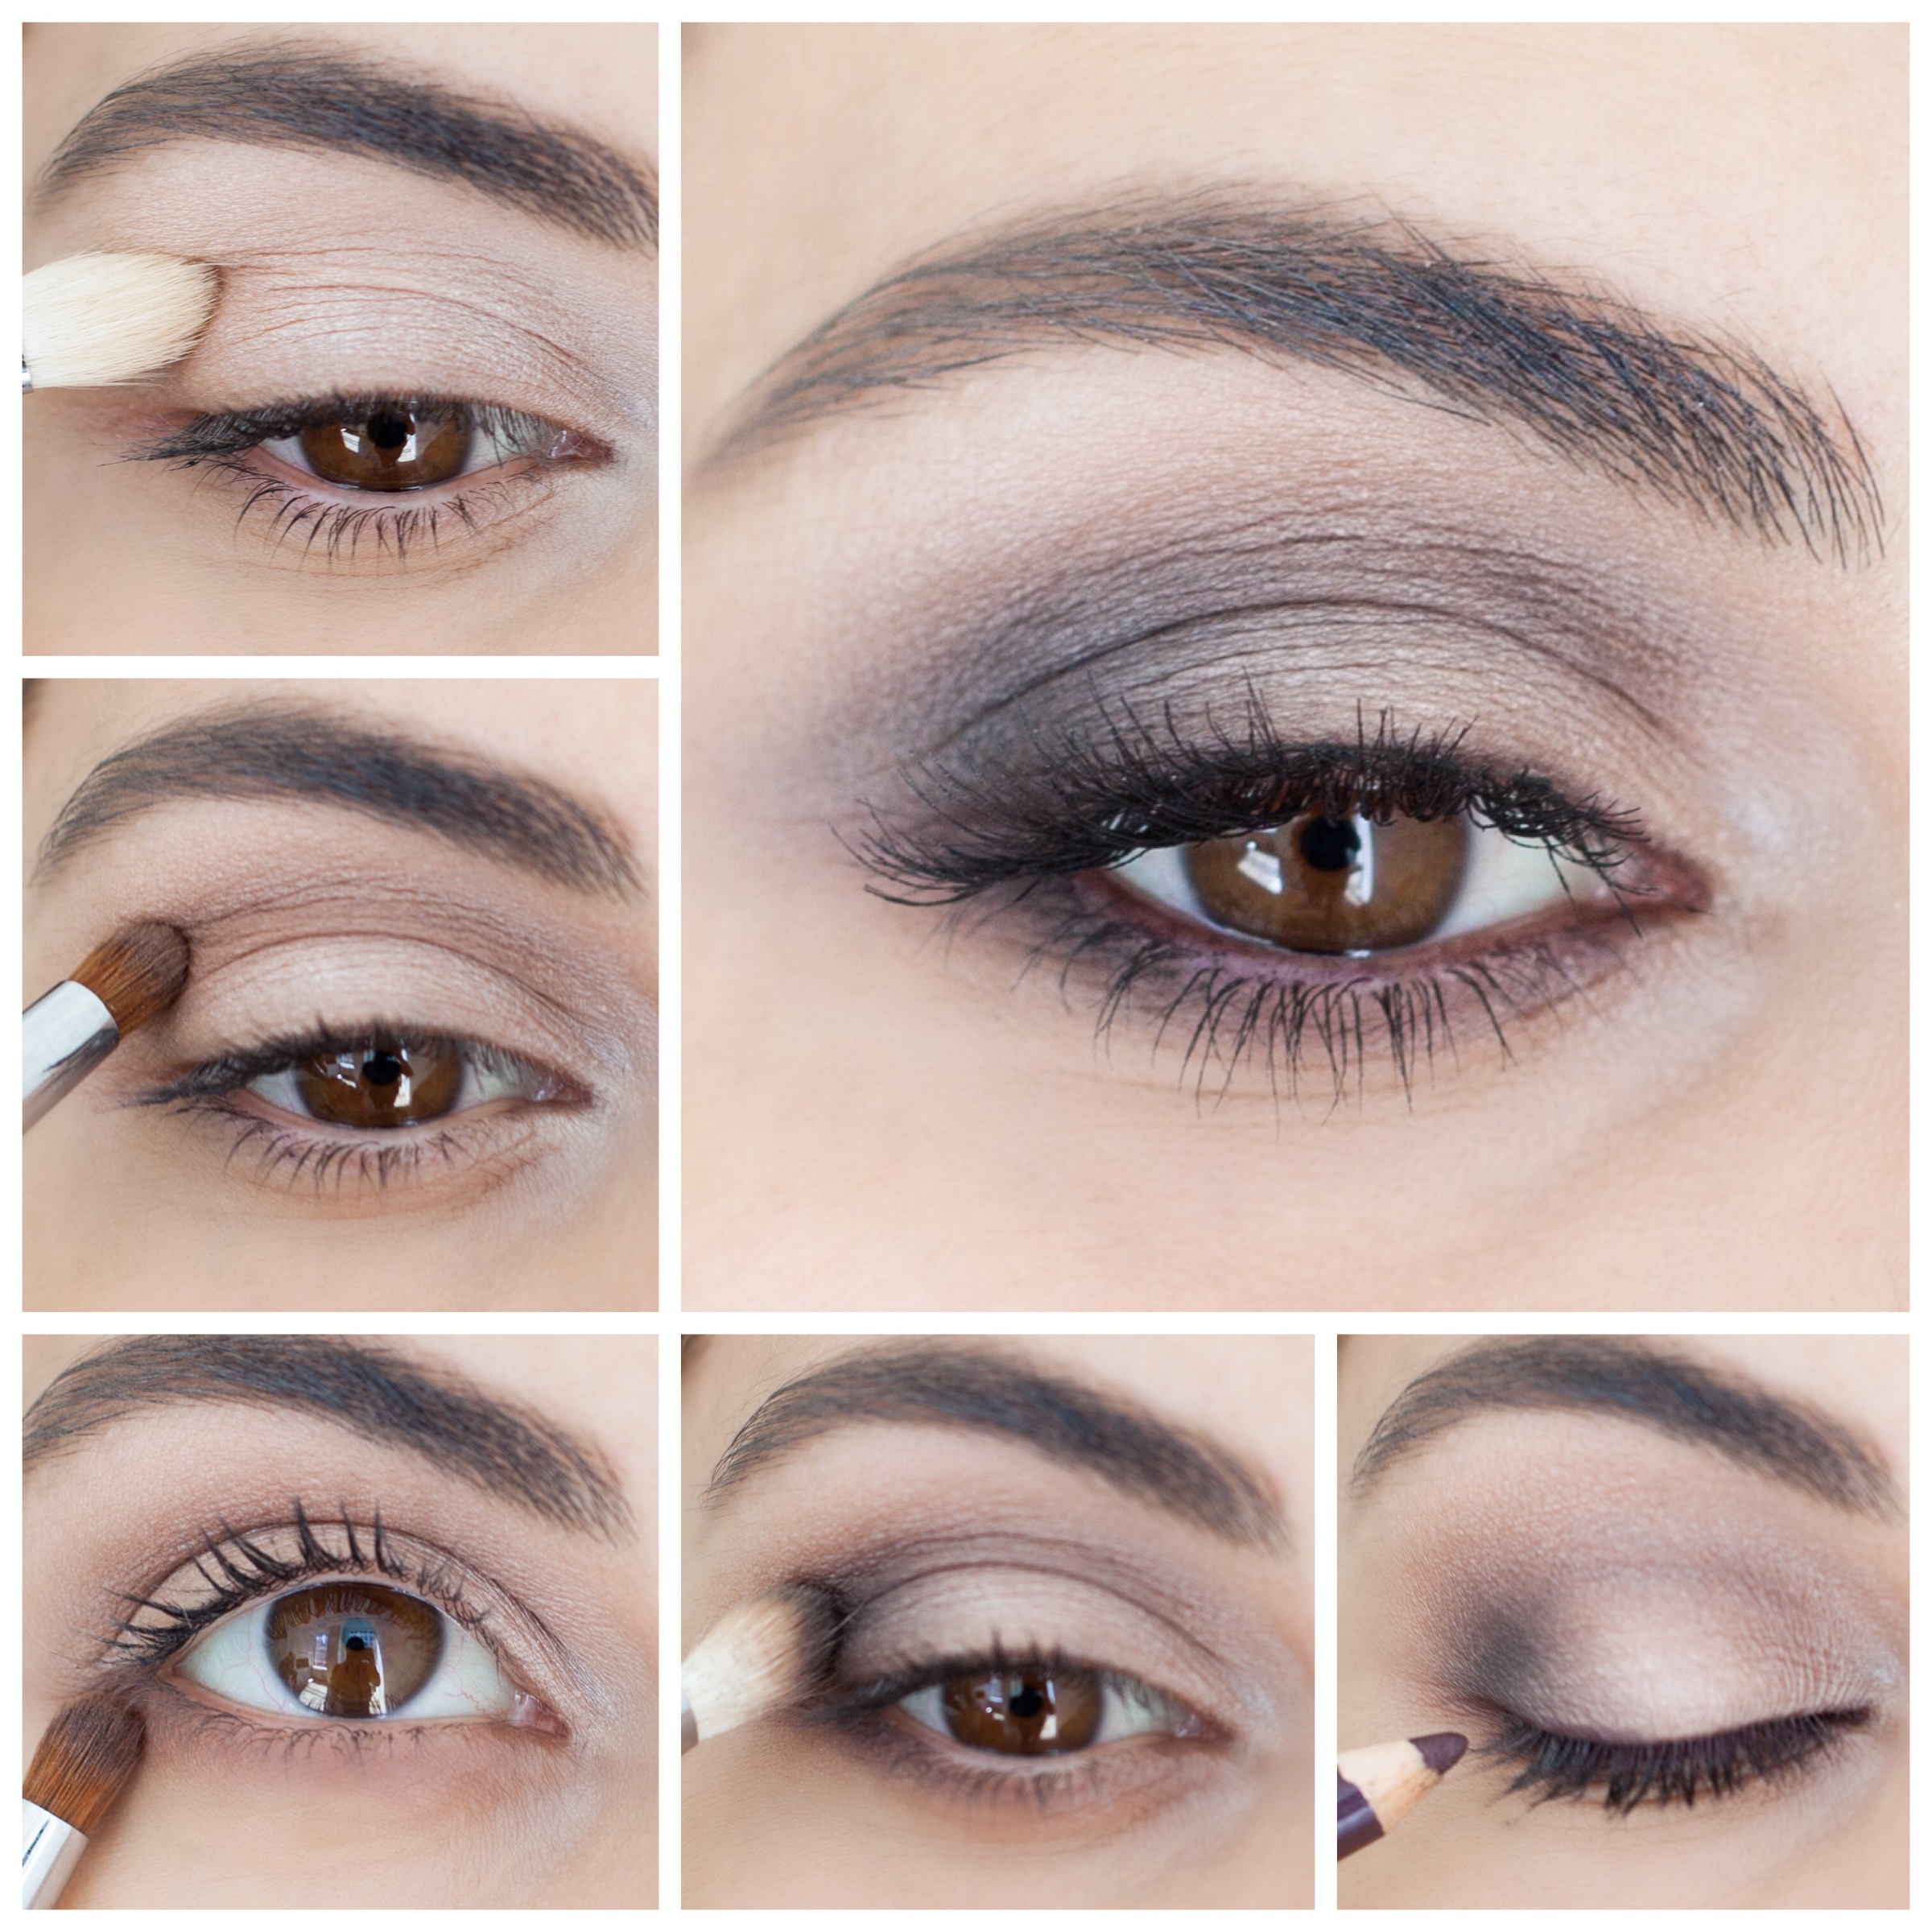 40 hottest smokey eye makeup ideas 2018 smokey eye tutorials for how to step by step light smokey eye makeup tutorial for brown eyes baditri Images